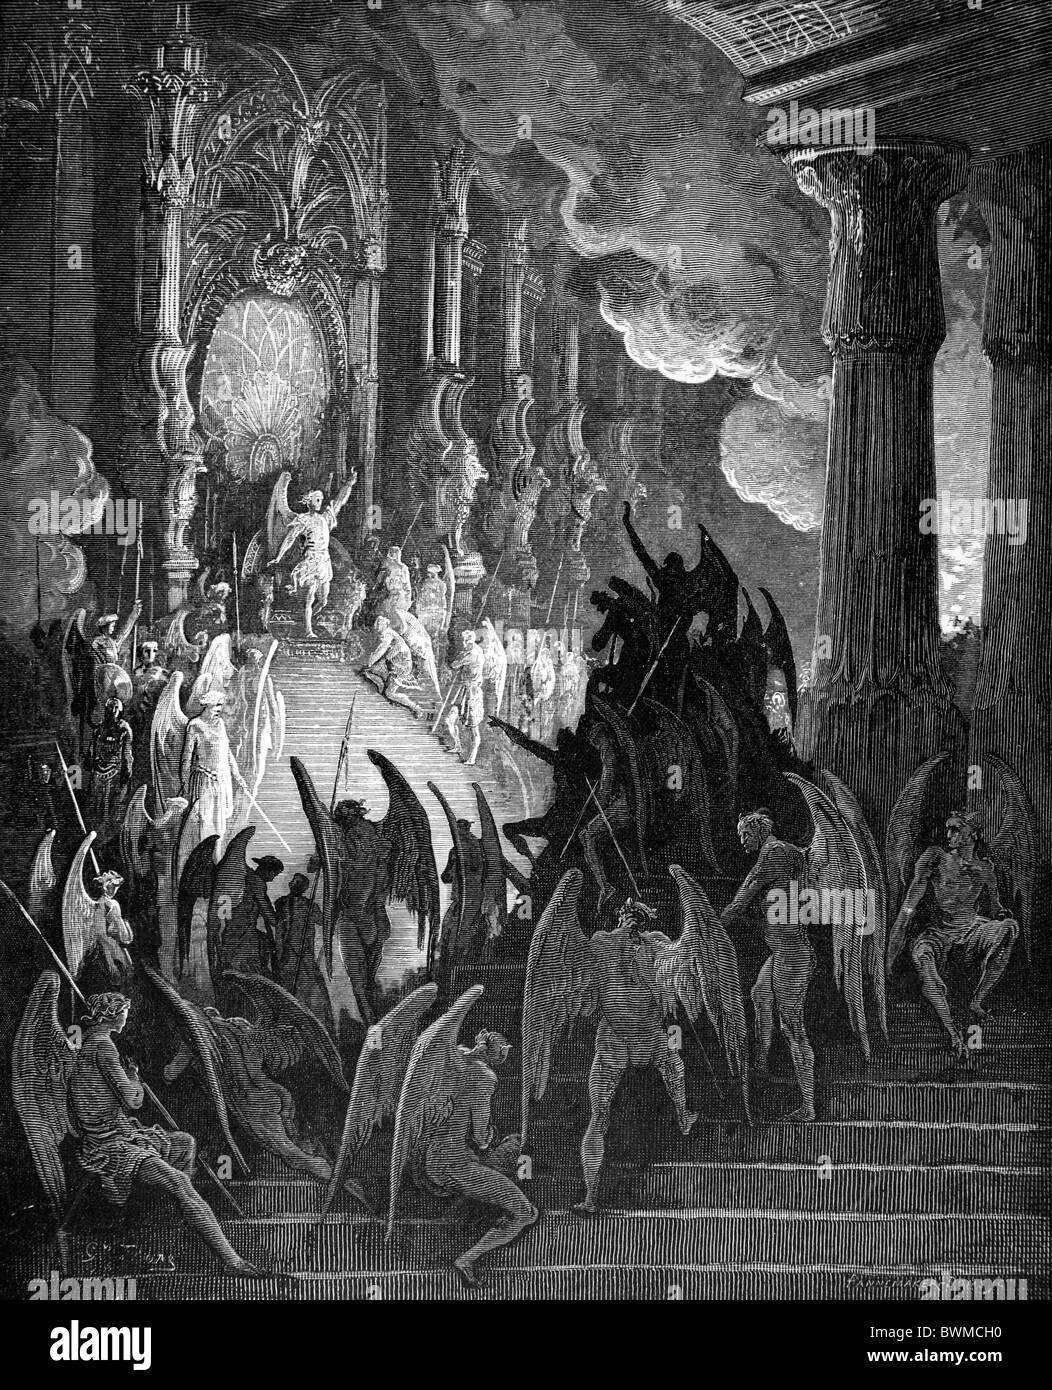 Gustave Doré; Black and White Engraving; Satan in Council from John Milton's Paradise Lost - Stock Image